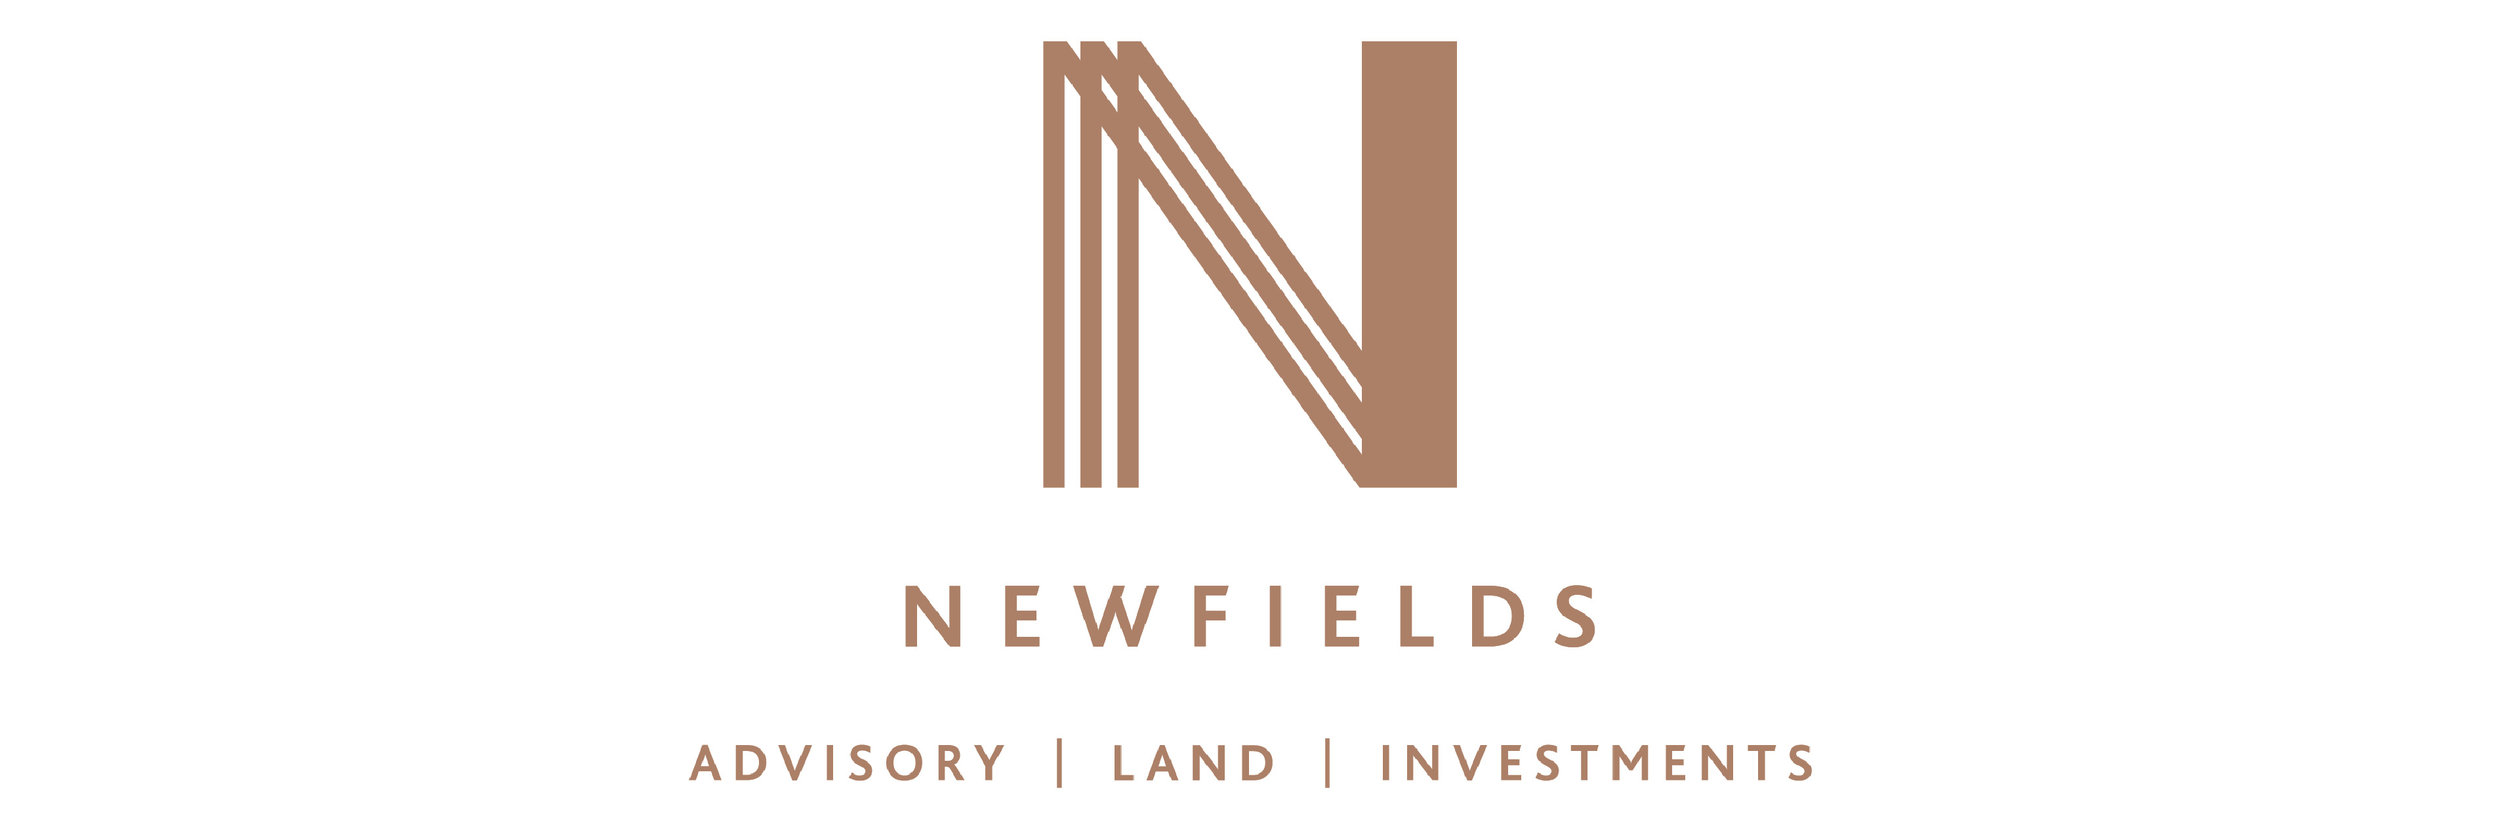 outeredit - NEWFIELDS 1